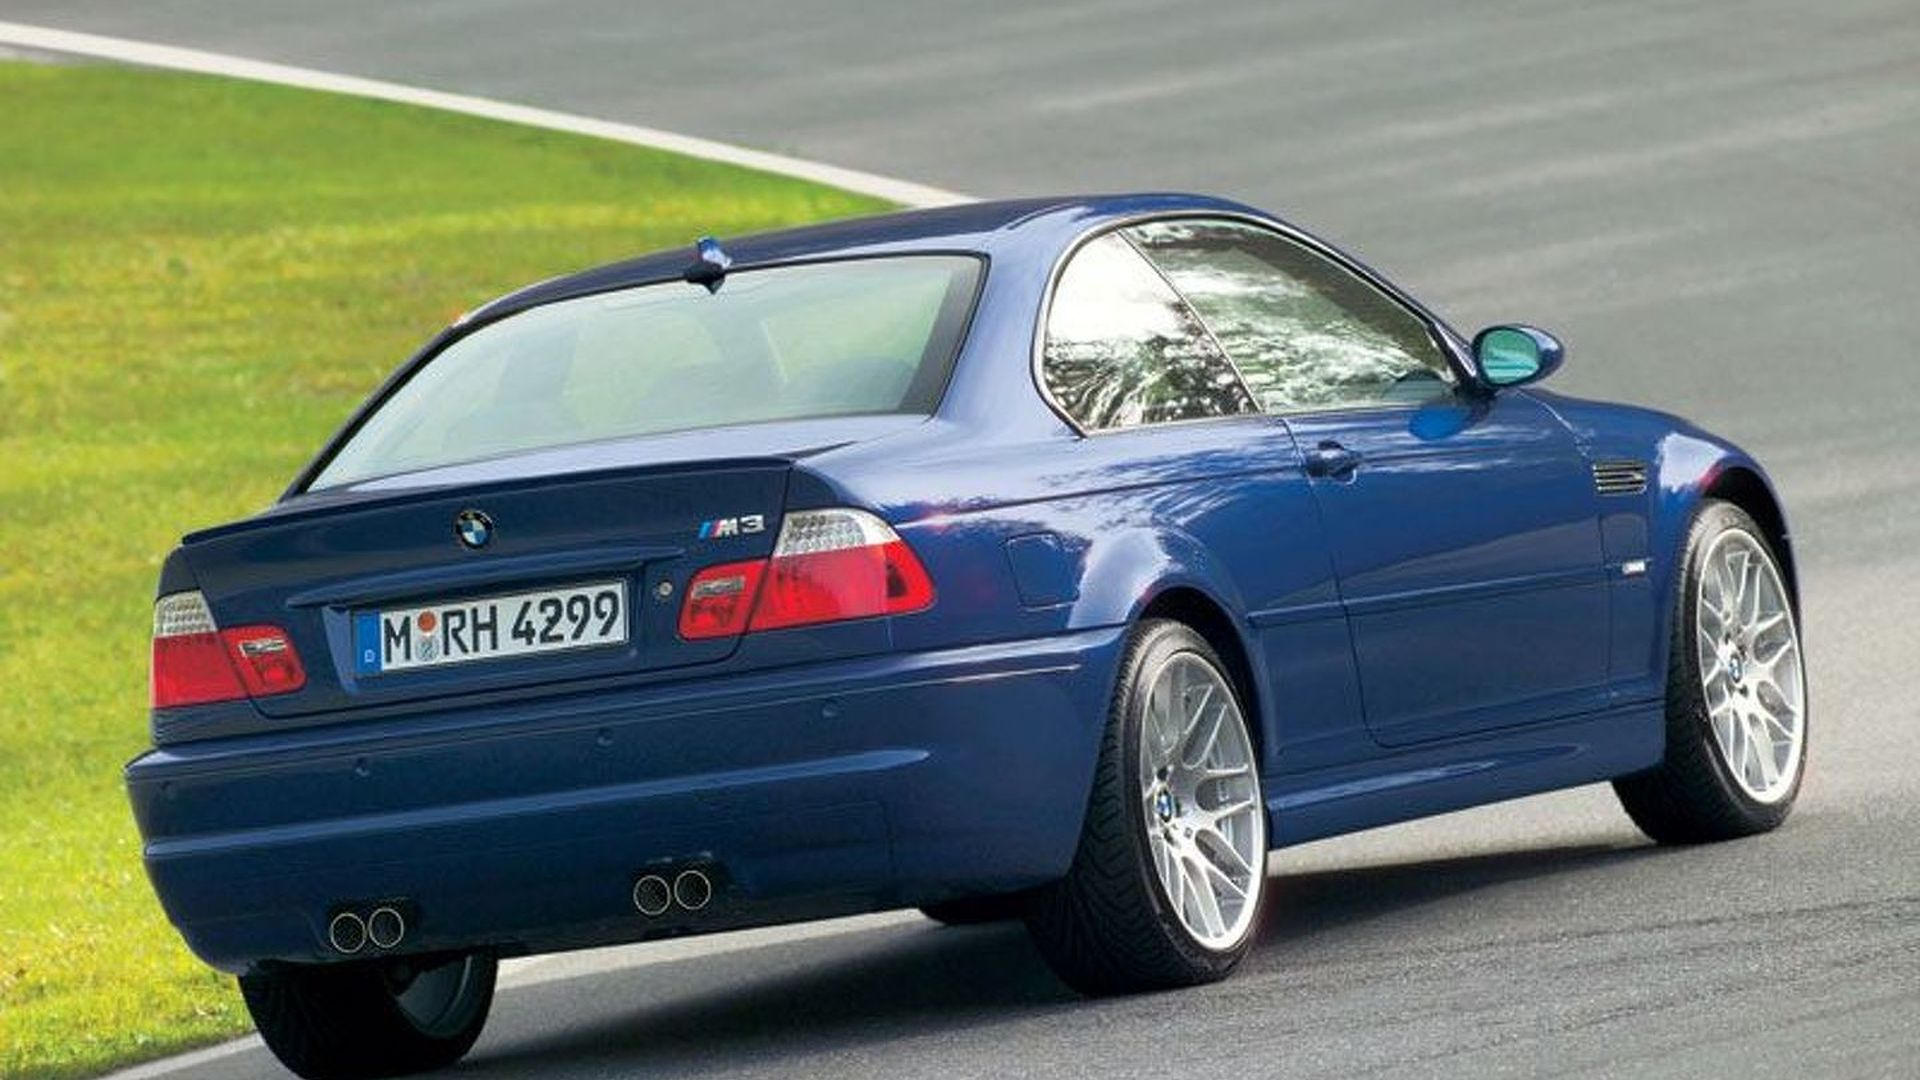 2005 Bmw M3 Coupe With Competition Package 169537